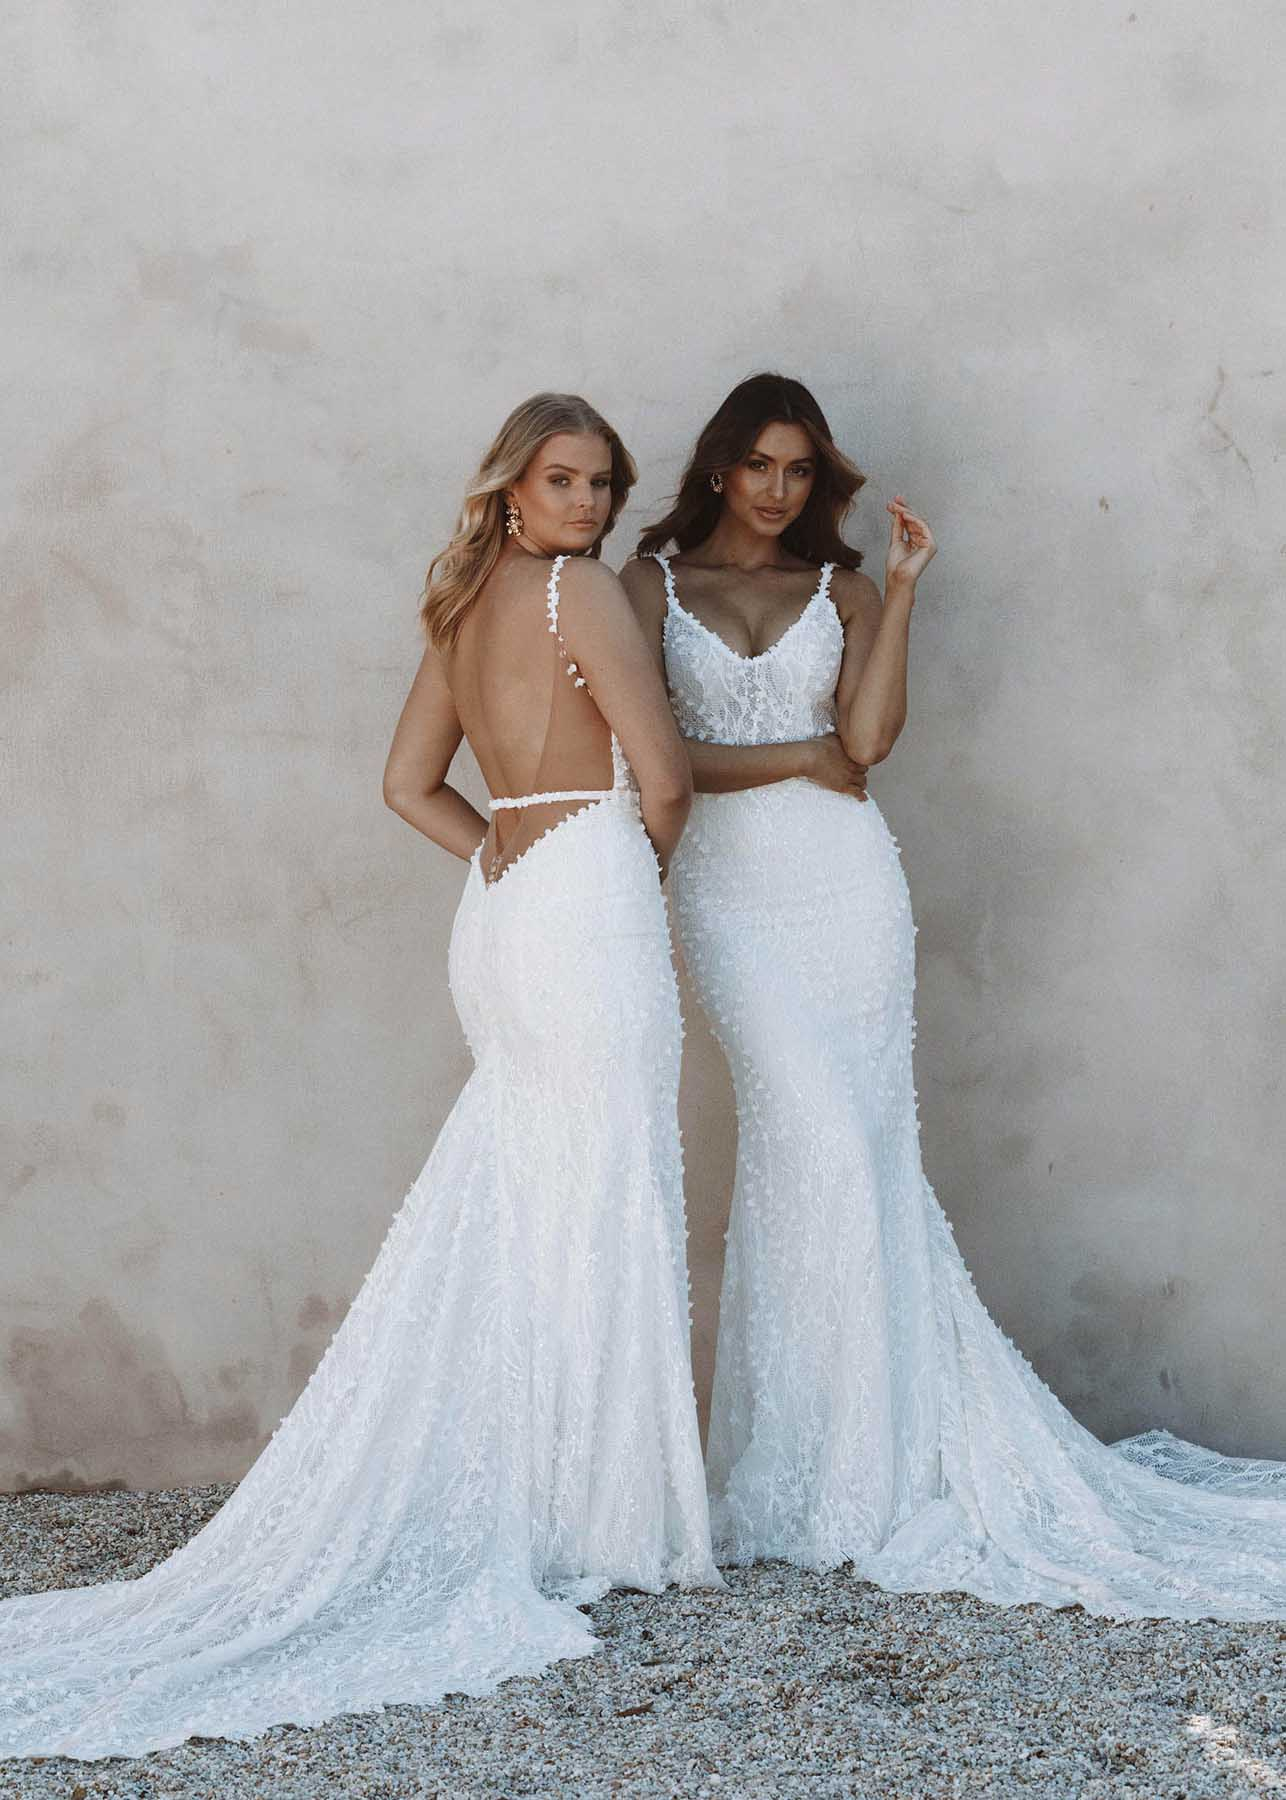 Harlow - Made With Love Bridal at MaidenWhite in Las Vegas. MWL v-back, low open back, removable belt detail, sheer lace bodice, fit n flare trumpet sheath, white ivory, spaghetti strap, scoop neck, cathedral train.q